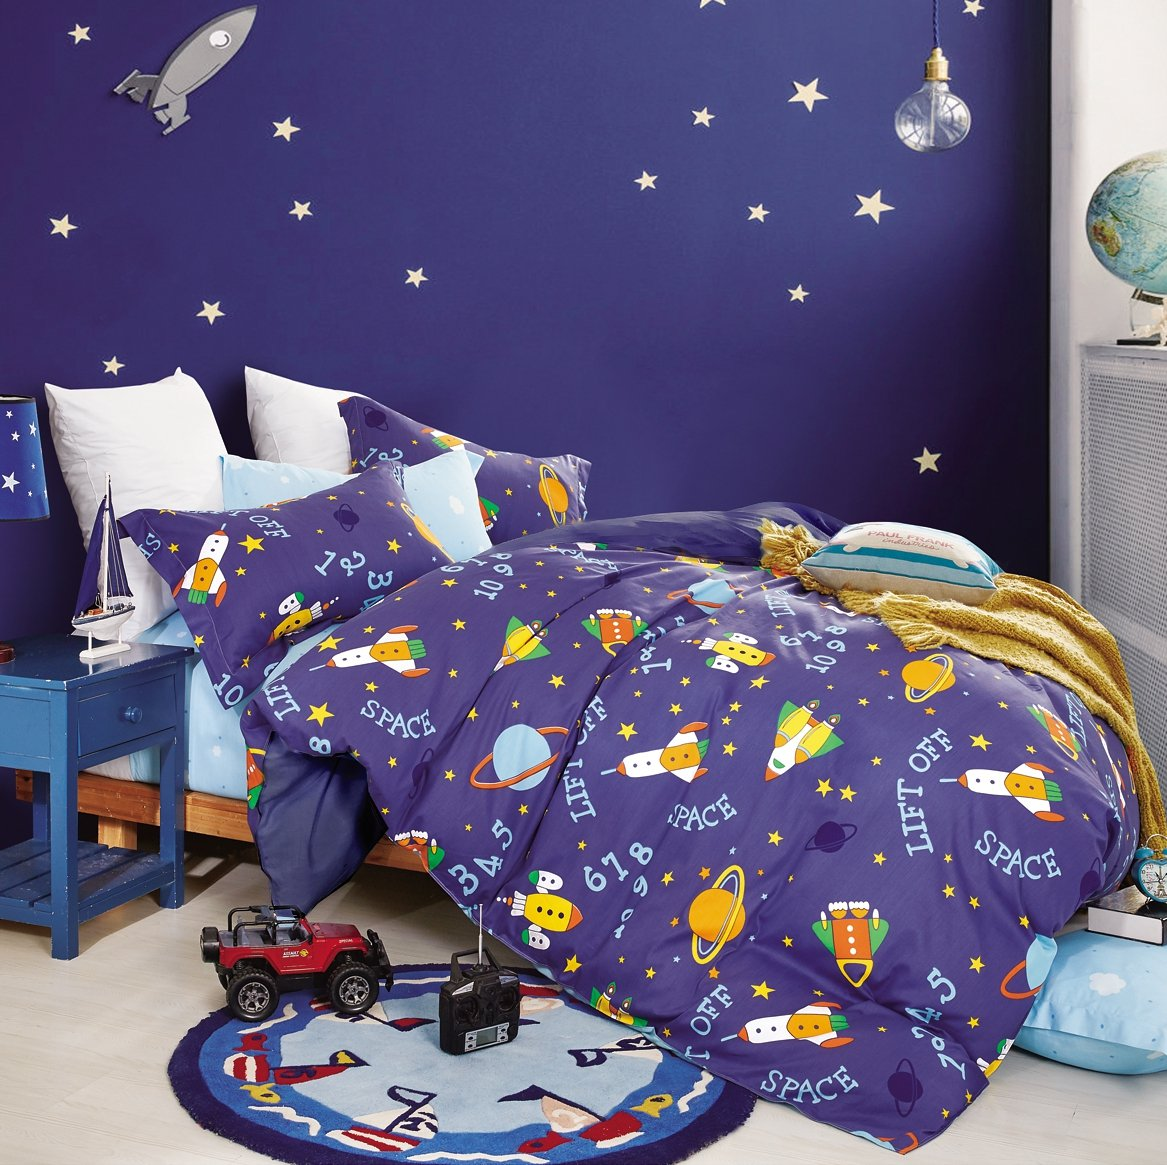 Colorful Cosmos Rockets Planets Spaceship Stars Boys Bedding Twin or Queen Duvet Cover Set 100% Cotton Galaxy Outer Space Room for Kids Bedroom (Queen, Blue